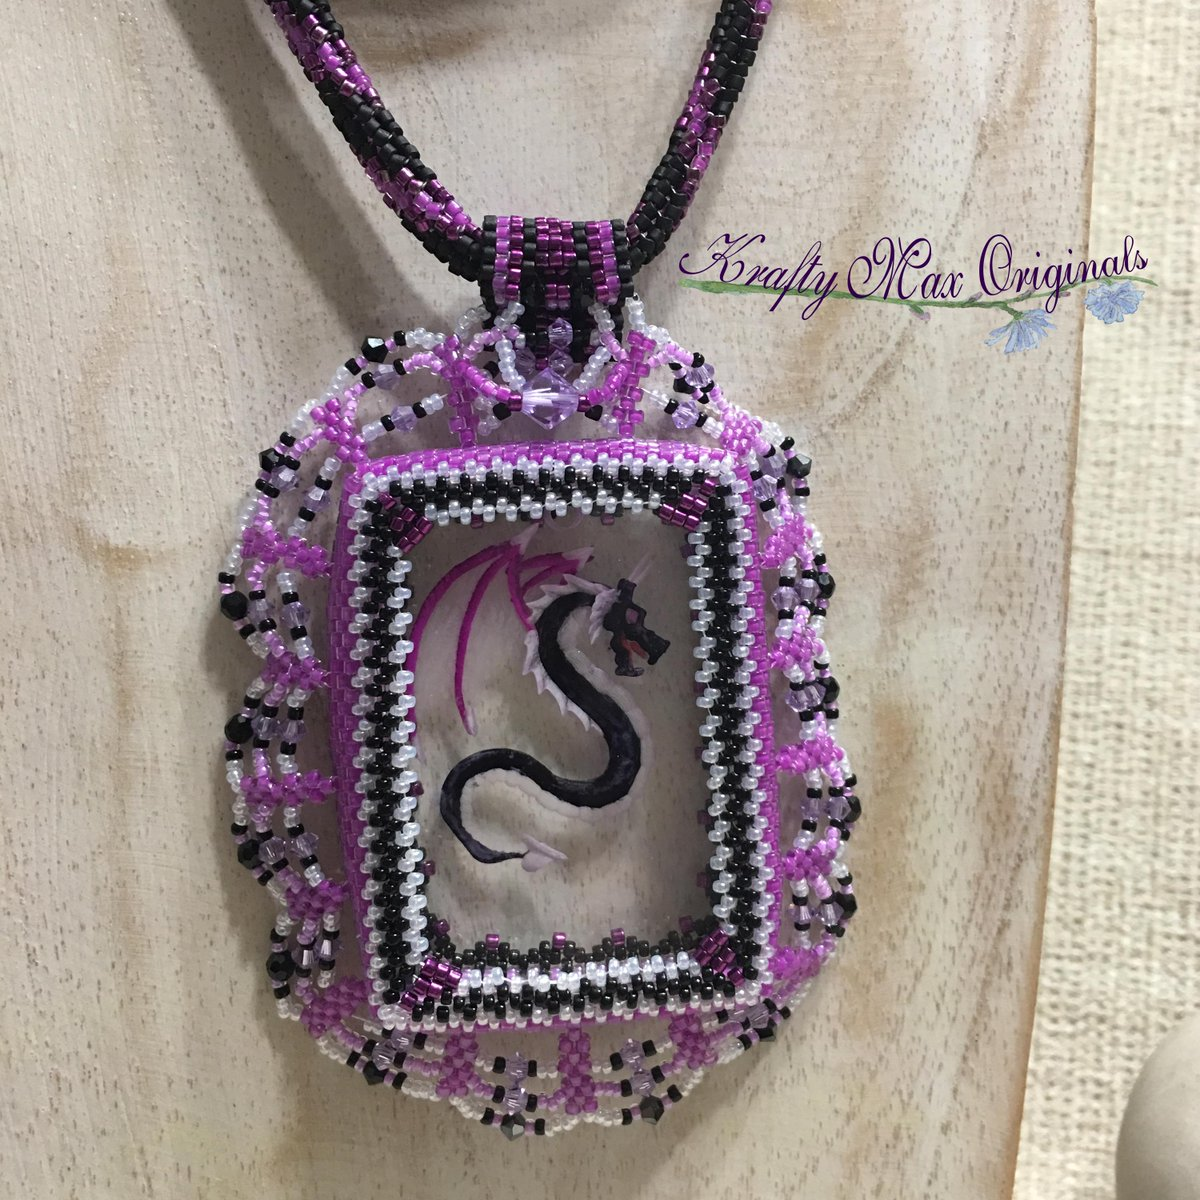 Dragon of the Ashen Moon Beadwoven Wearable Art Necklace Set (discounted from $147 down to $70)  #handmade #jewelry #buyhandmade #handmadelove #handcrafted #kraftymax #kmax #discount #sale #bargain #save #clearance